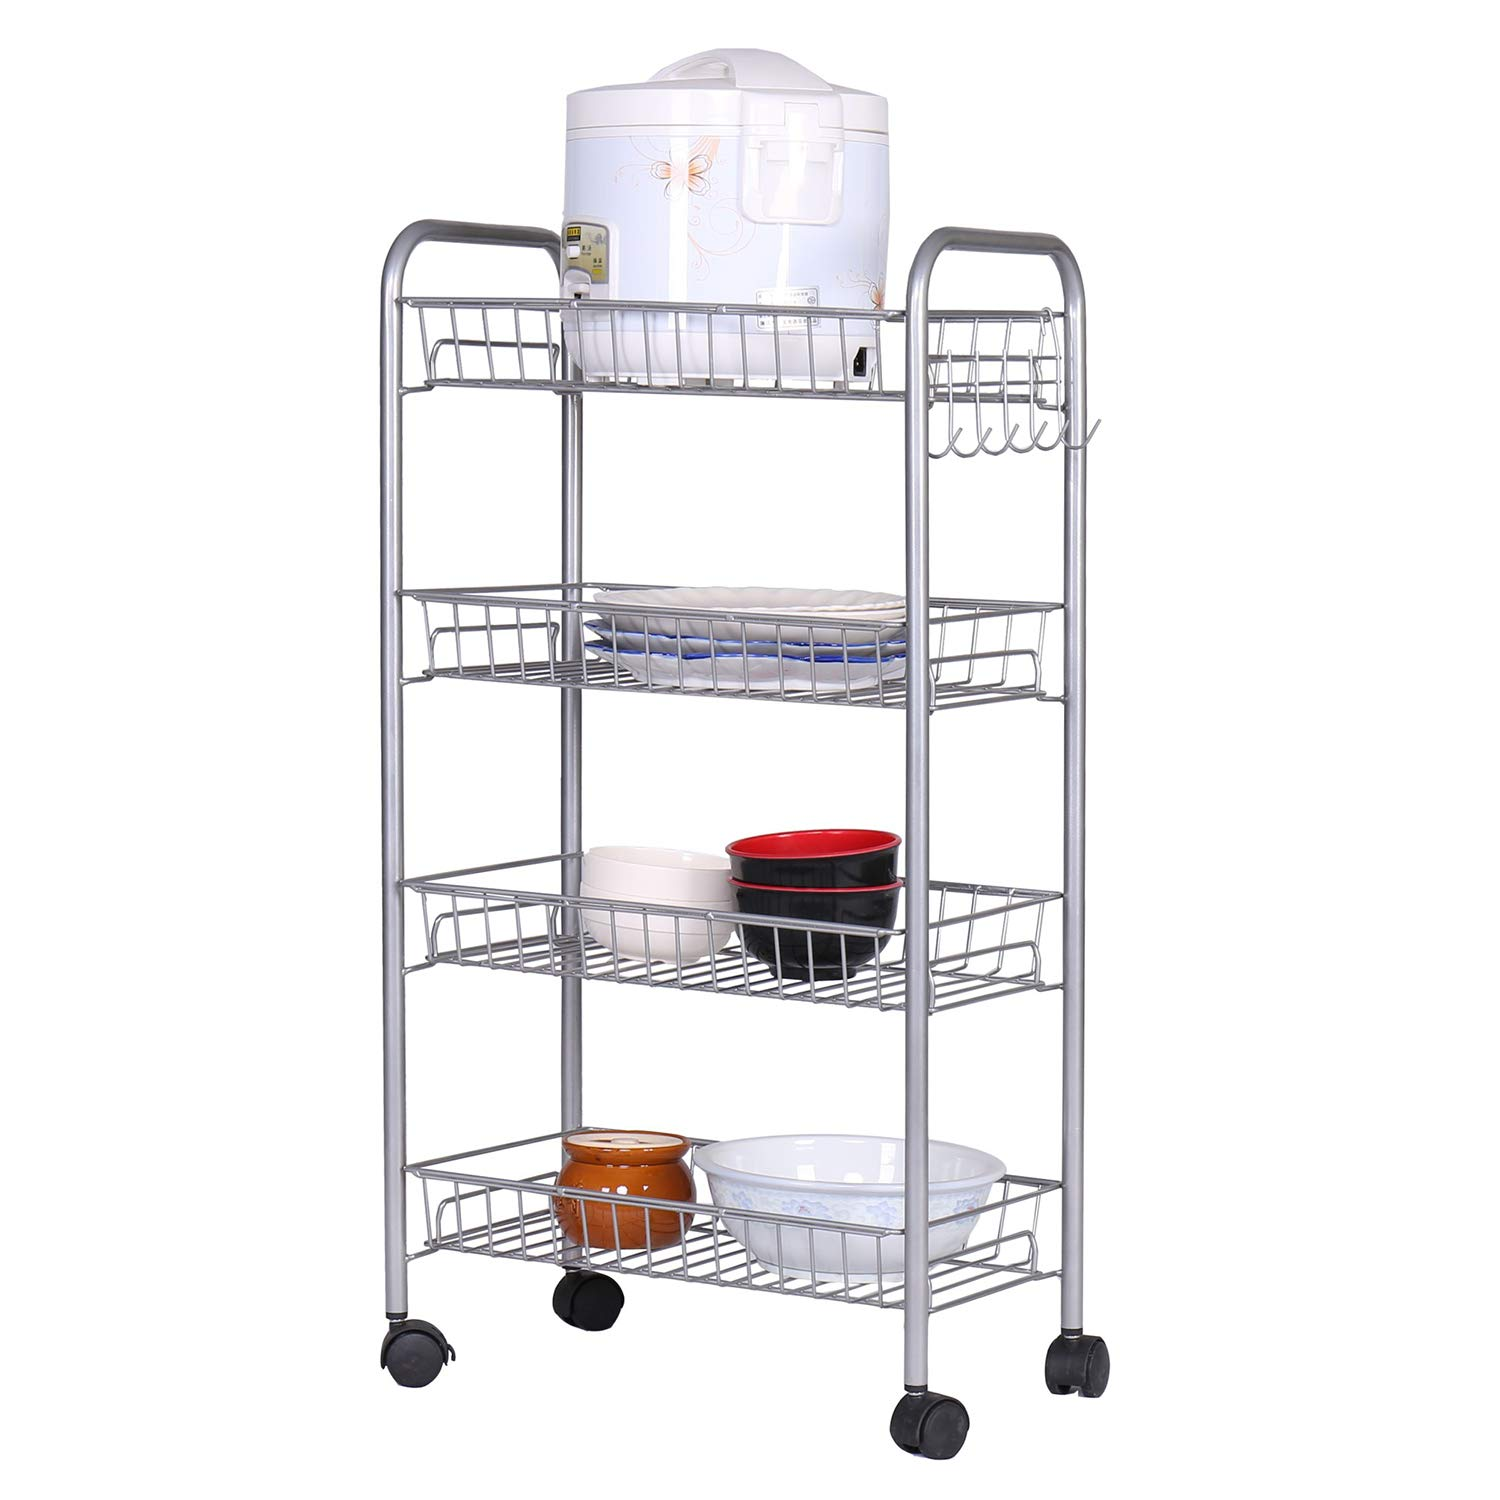 HOME BI 4-Tire Mesh Wire Rolling Cart on Wheels, Lockable Utility Cart Basket Stand with Removable Shelves and 6 Hooks for Kitchen Bathroom Closet Organization